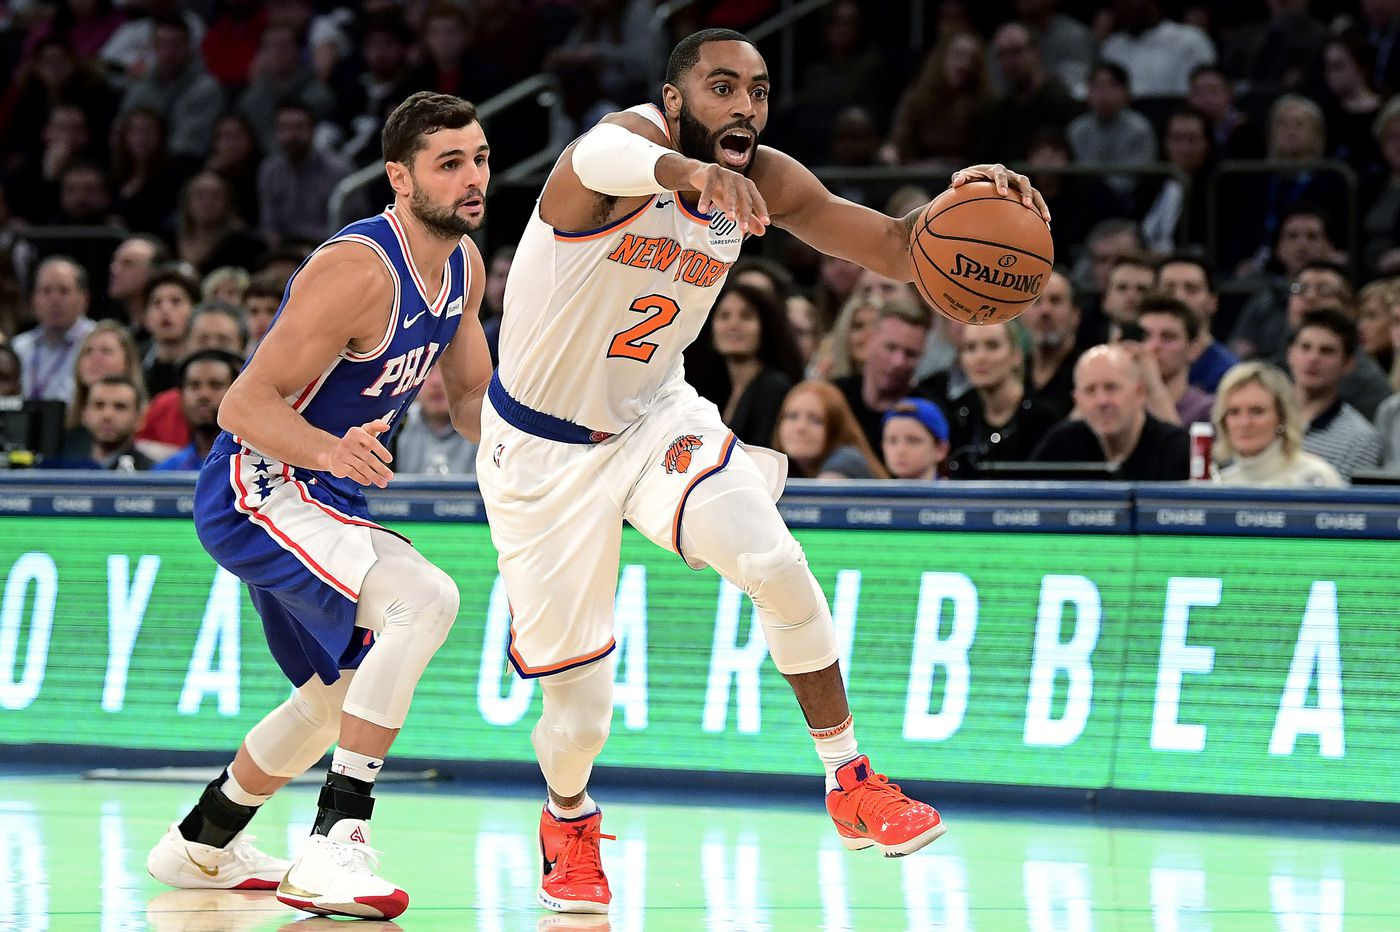 Sixers-Knicks best and worst: James Ennis III's savior role, Norvel Pelle's stellar shot blocking, Mike Scott's shooting woes continue